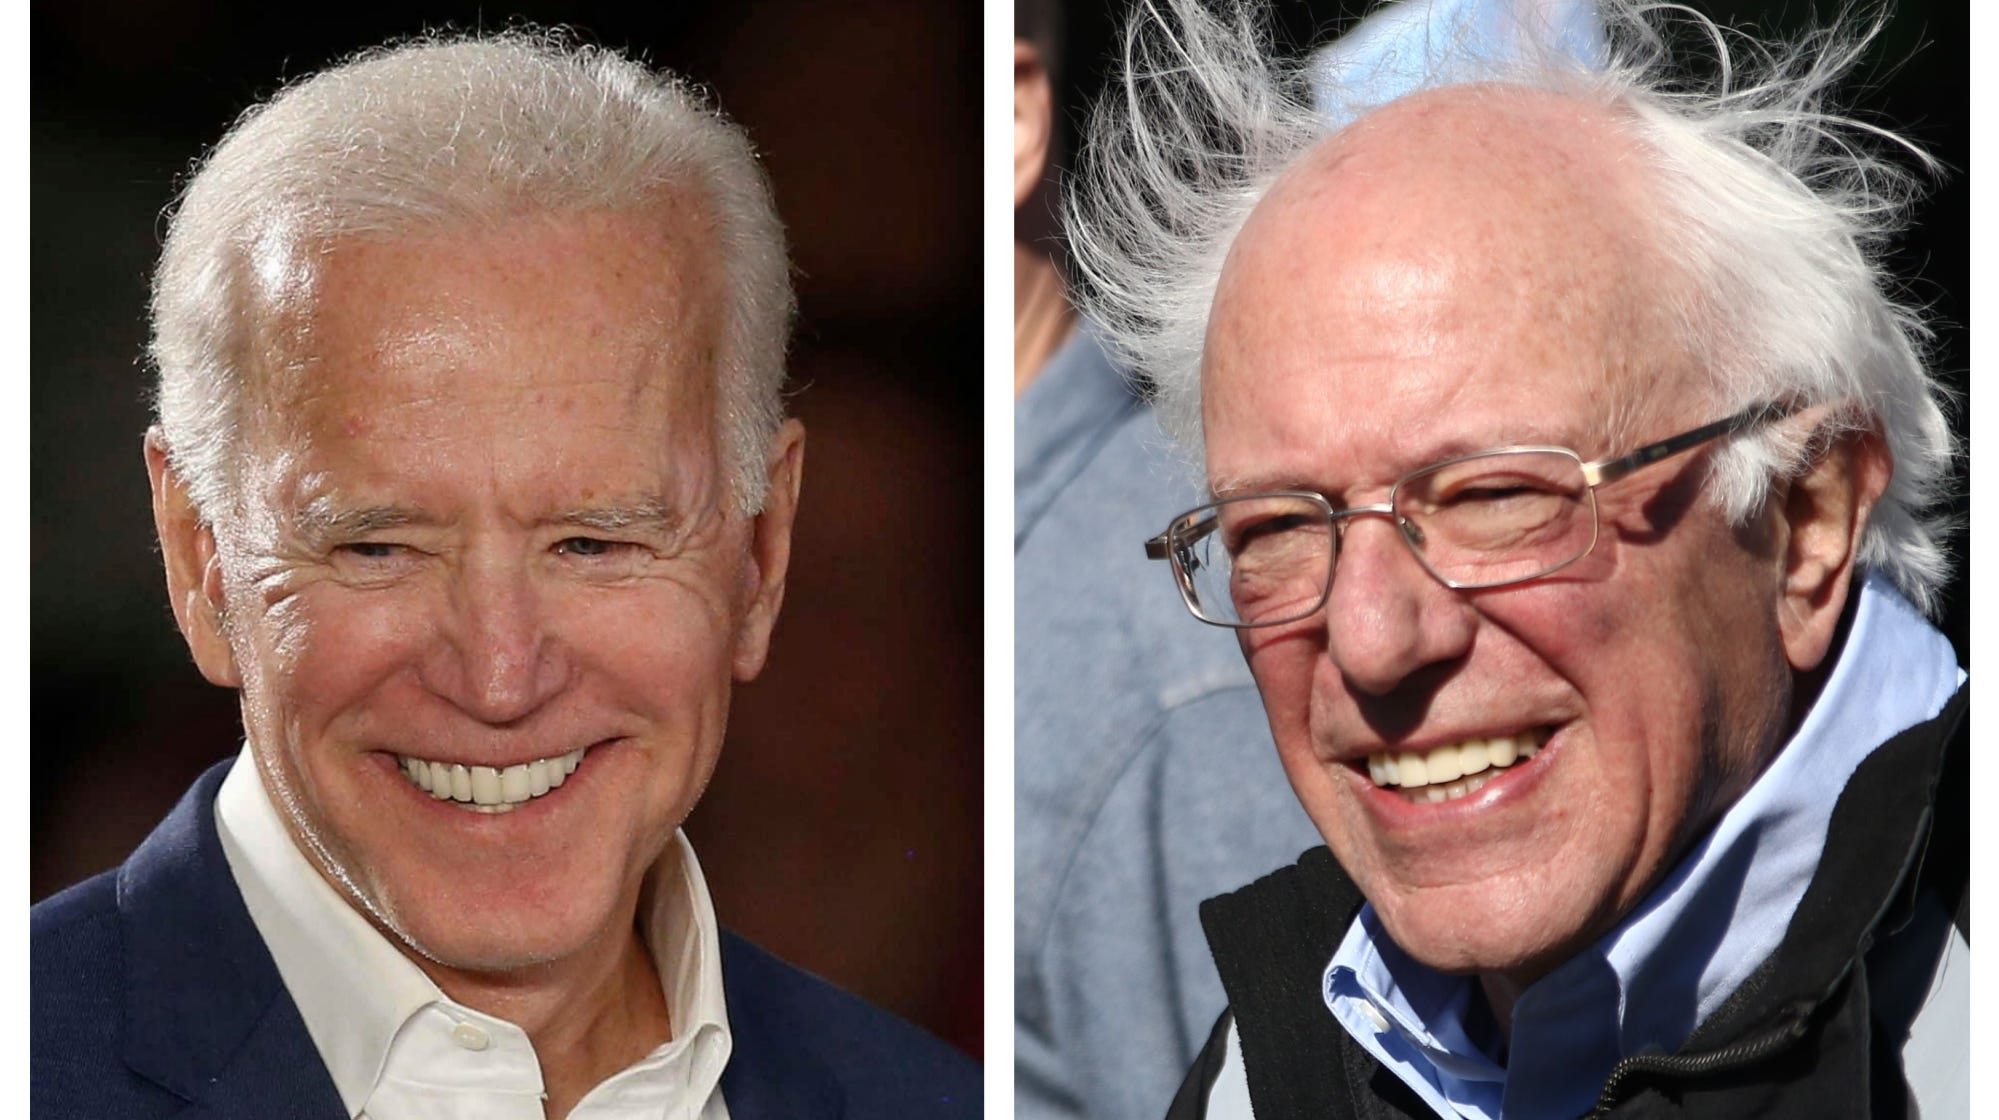 Joe Biden and Bernie Sanders top the list of potential presidential candidates preferred by Iowa's likely Democratic caucusgoers, according to the results of the latest Des Moines Register/CNN/Mediacom Iowa Poll.